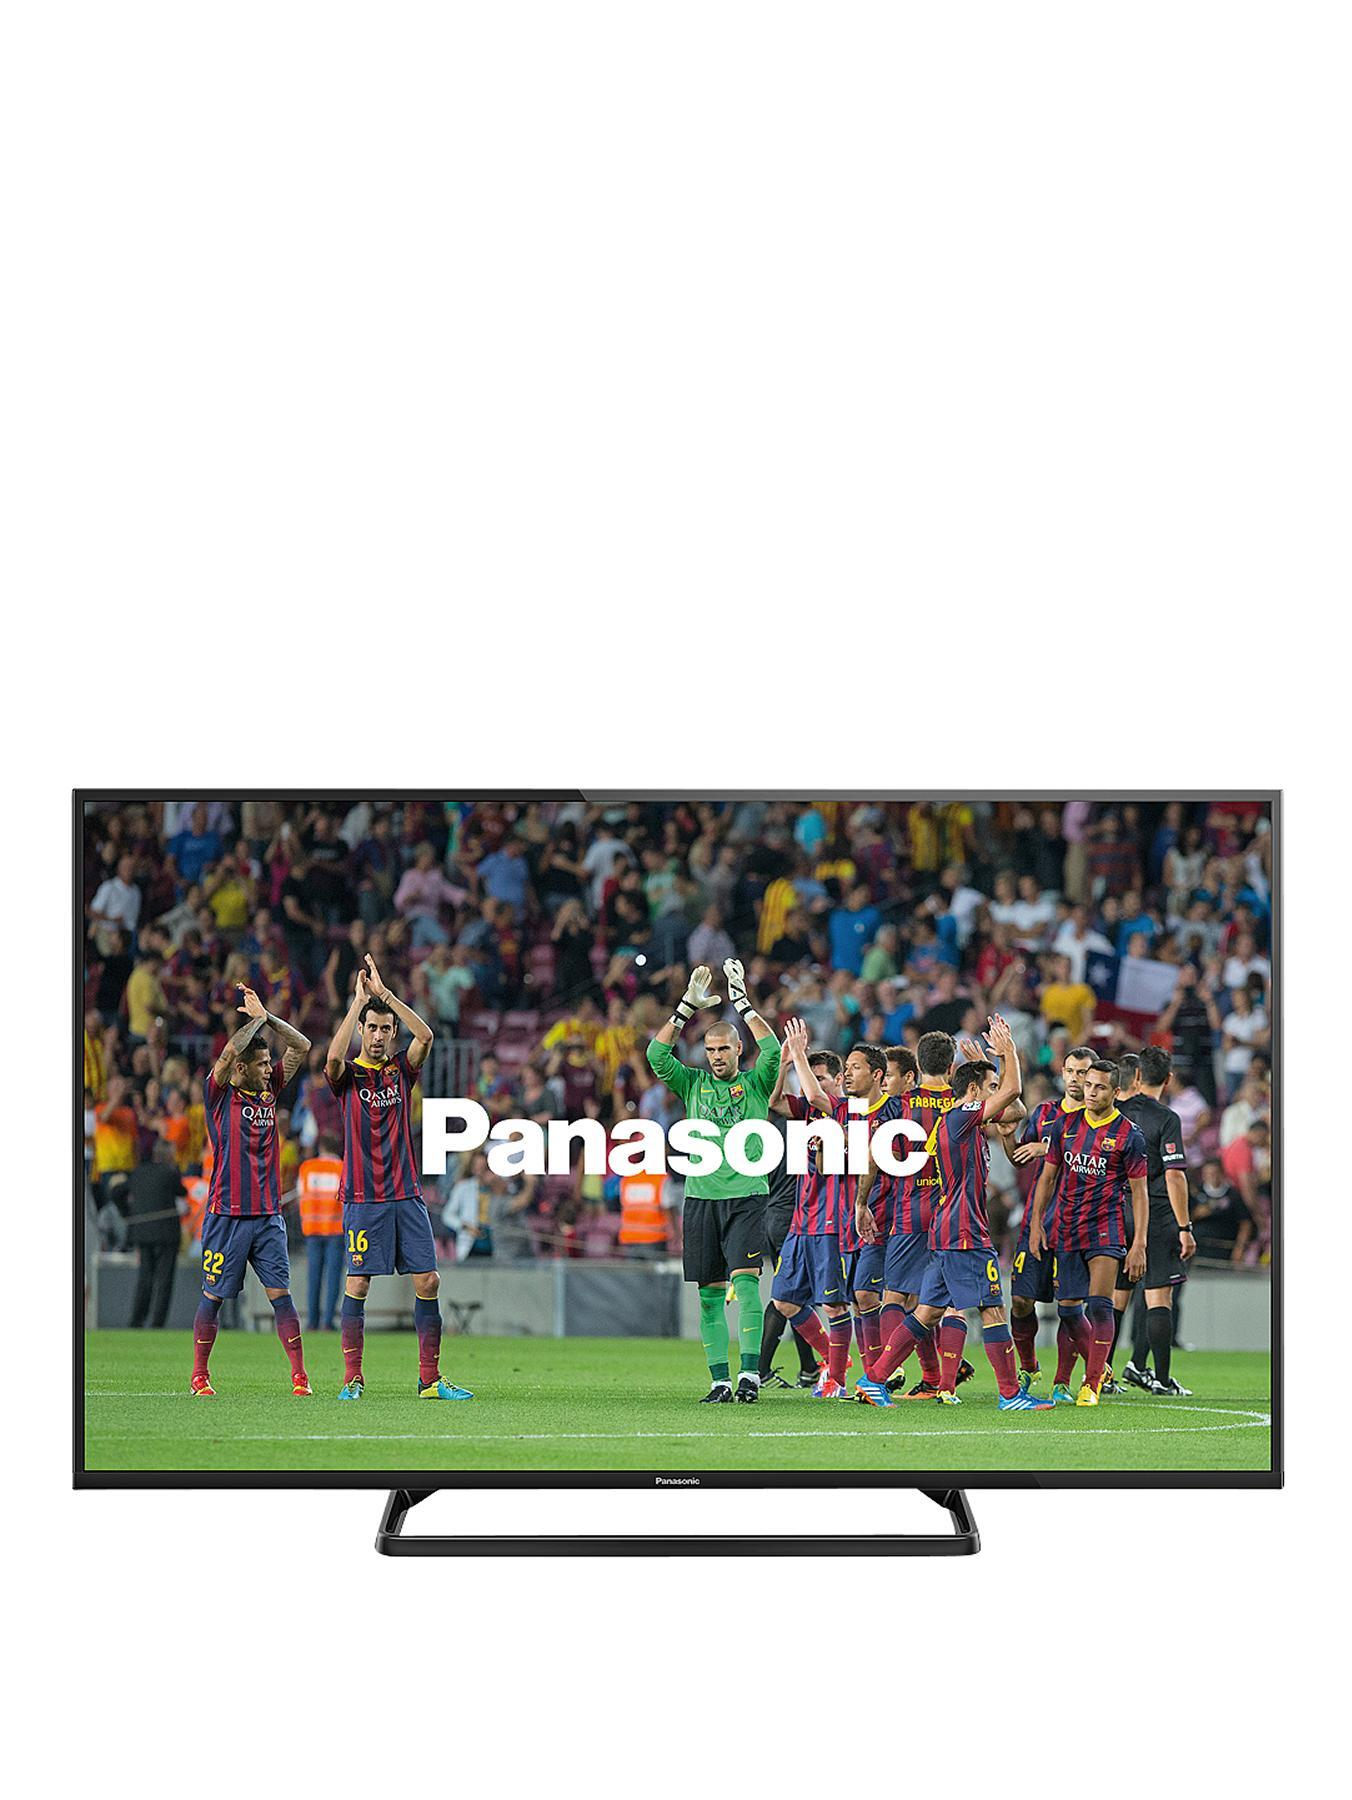 Panasonic TX-39A400B 39 inch Full HD, Freeview HD LED TV